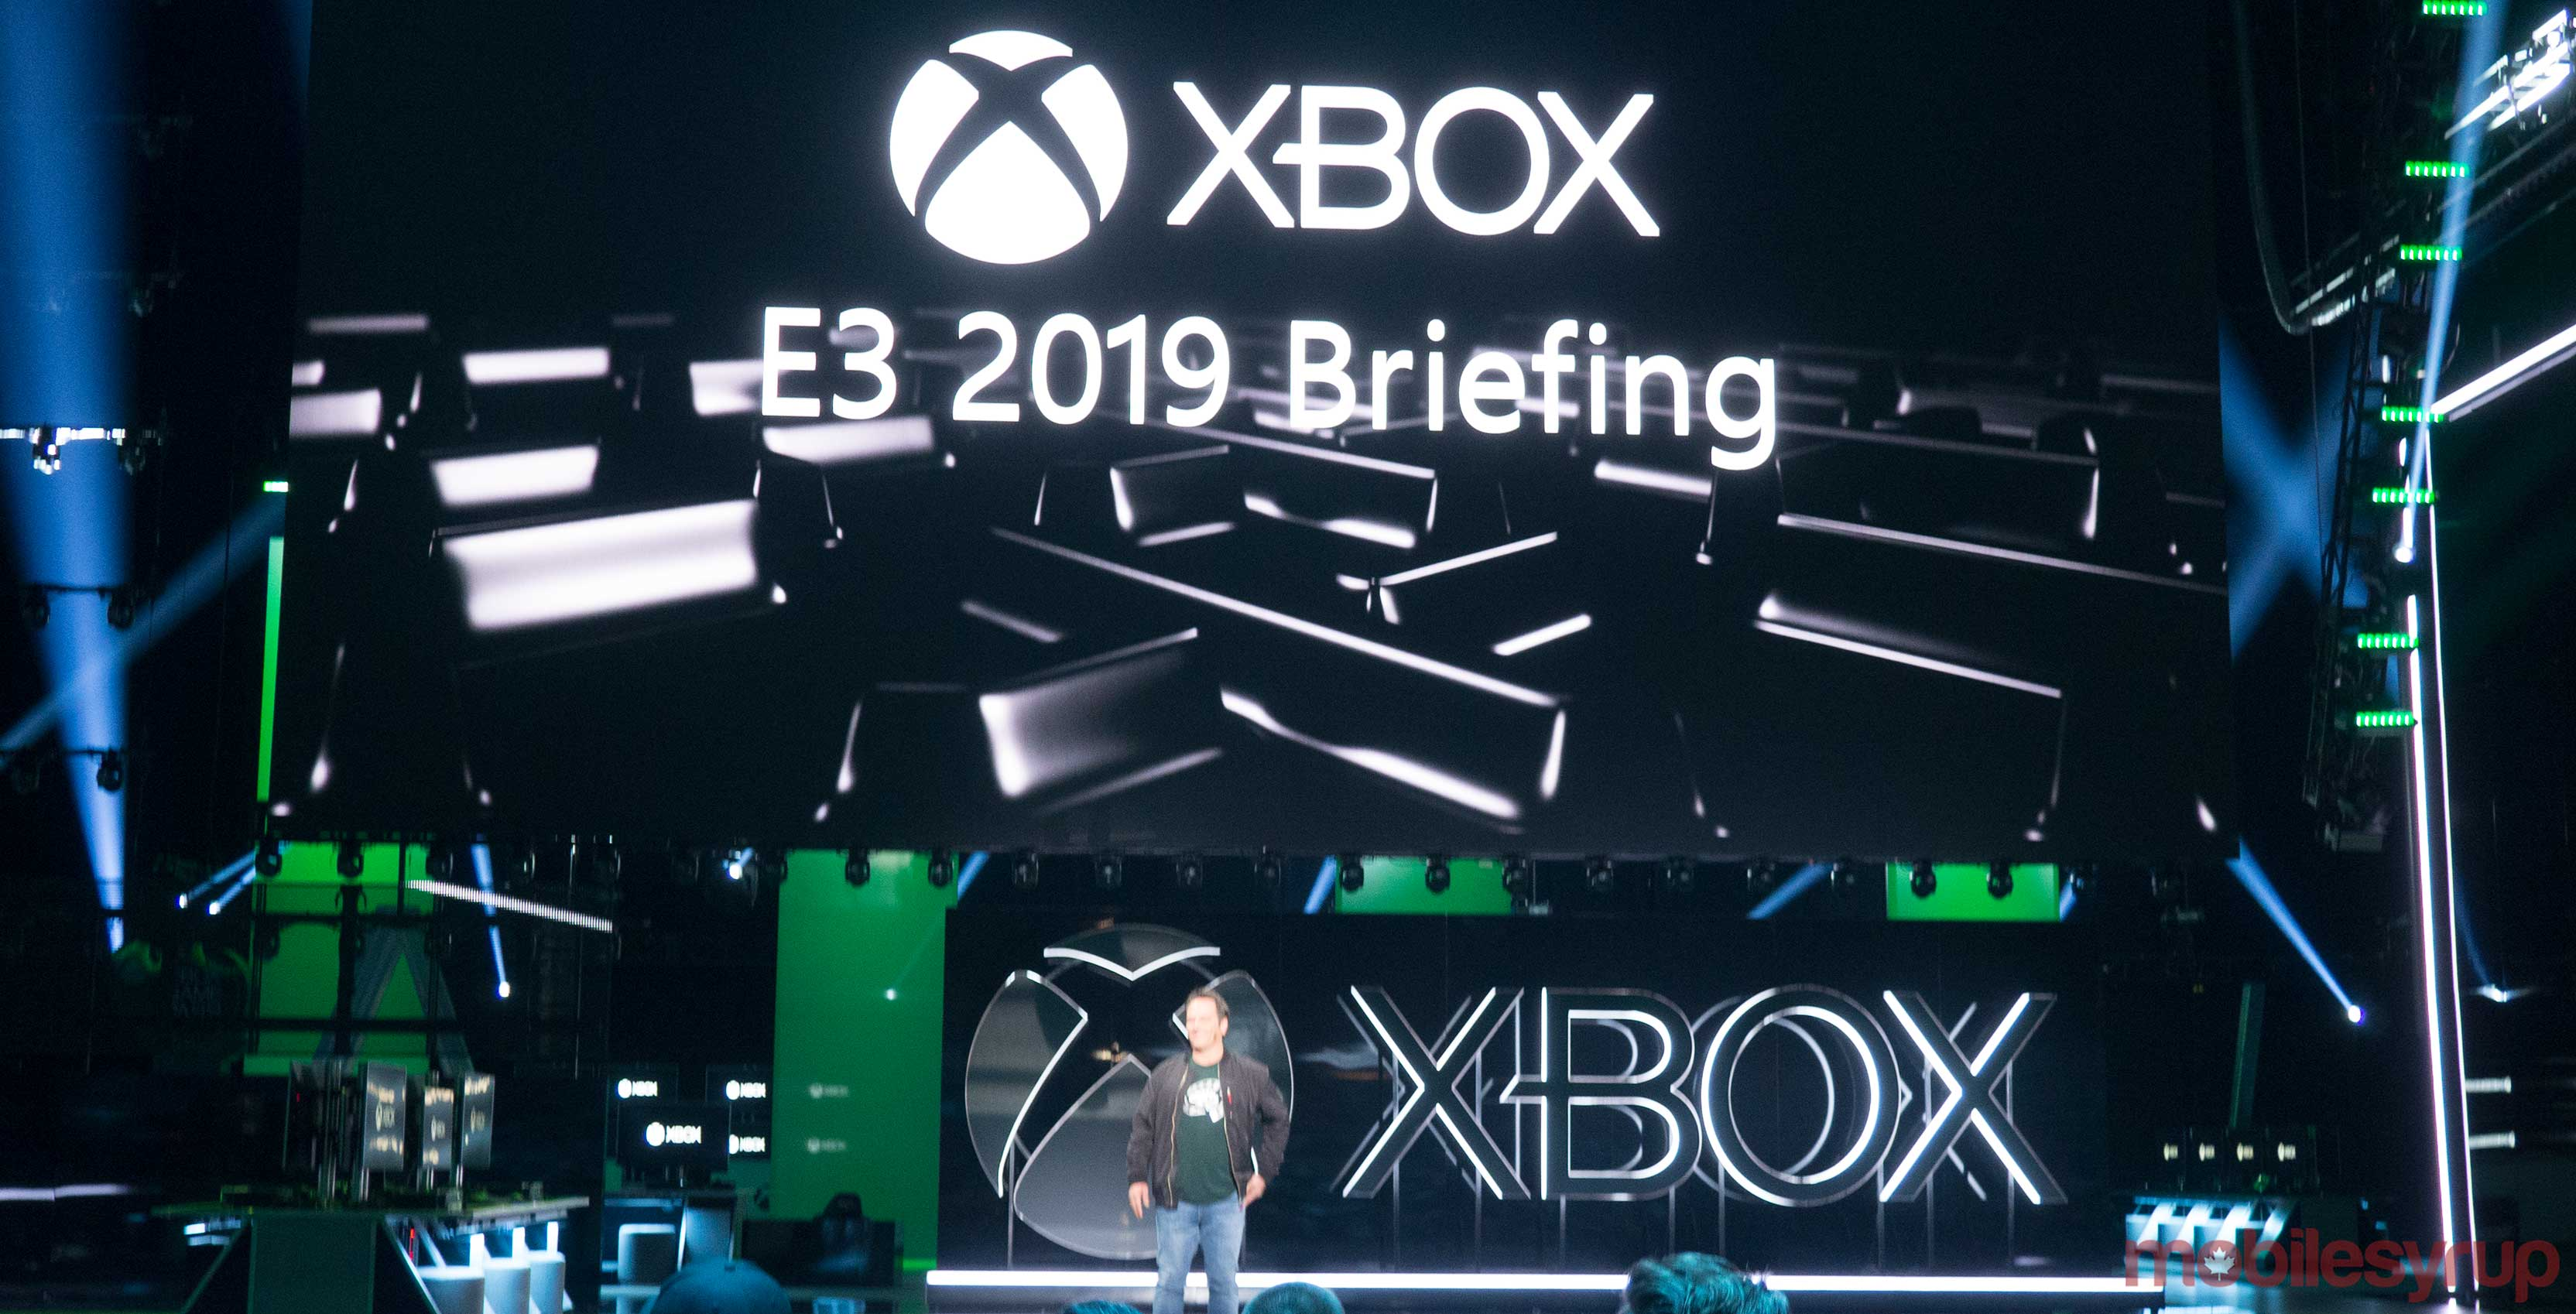 Xbox chief says Xbox Series X will focus more on framerate than resolution